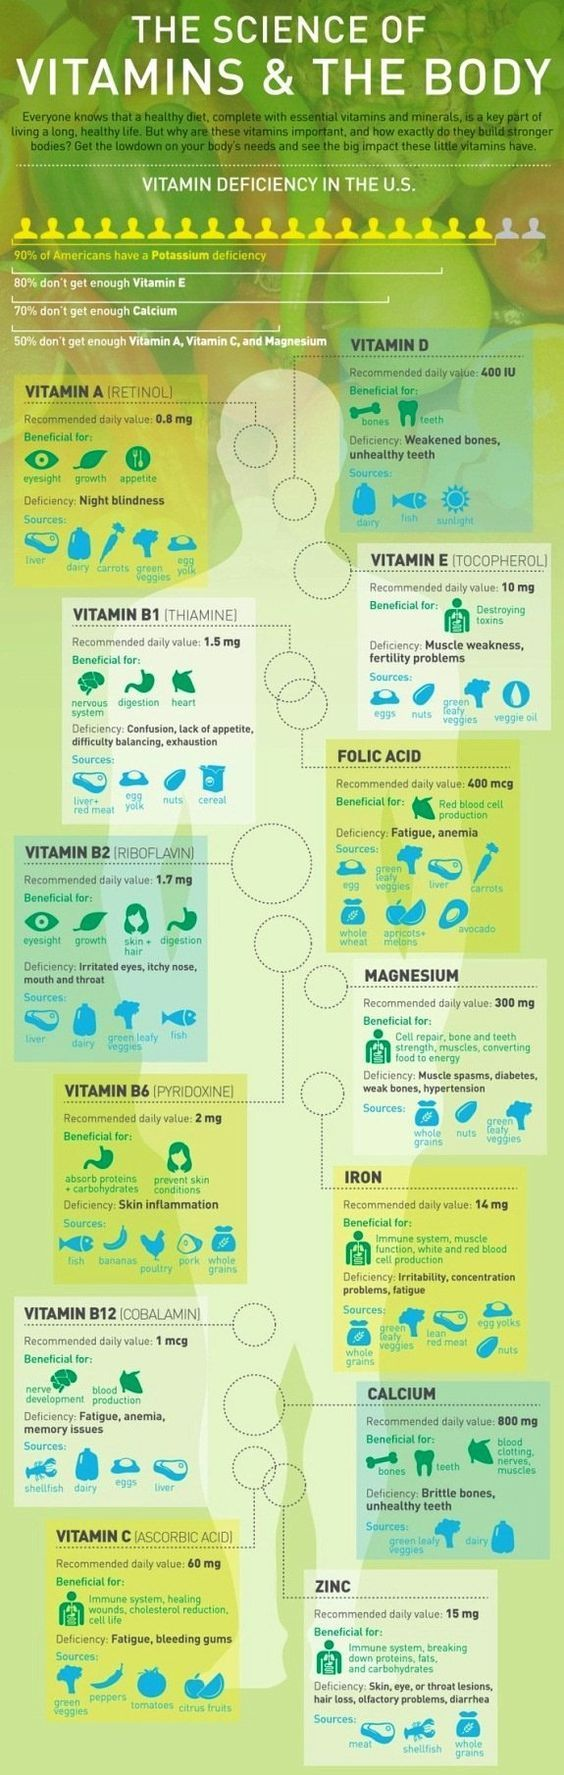 Vitamins, Food Sources, and How Defficiencies Affect Your Body